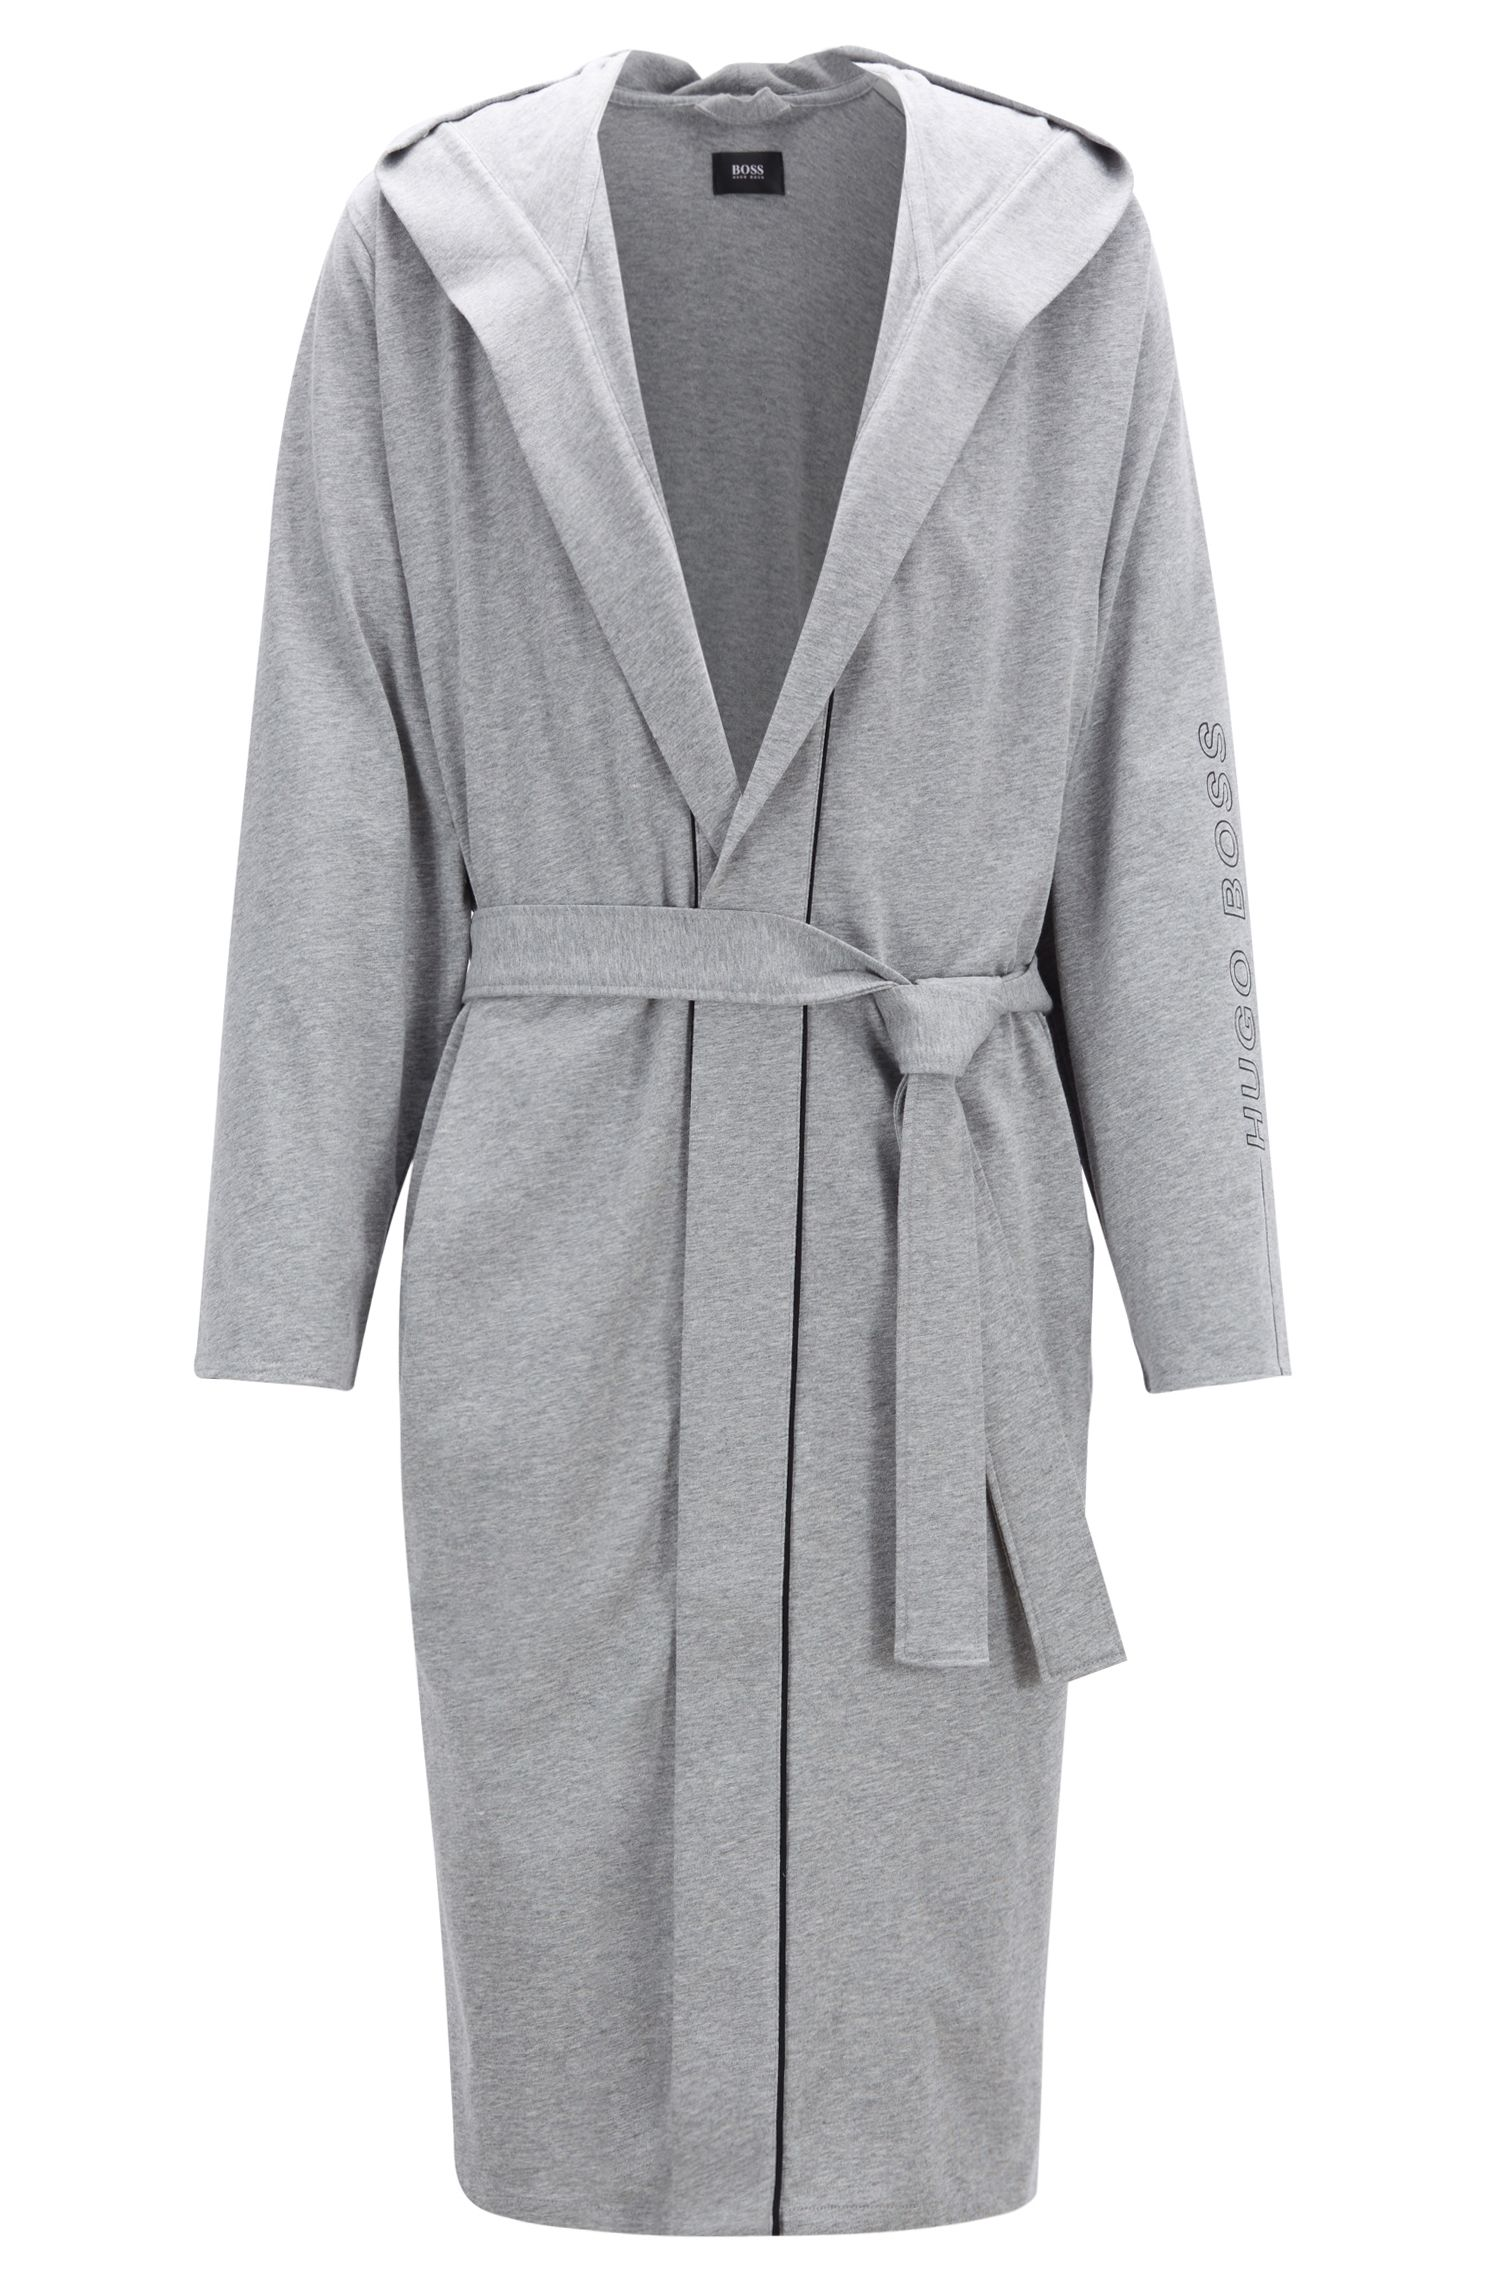 Hooded dressing gown in heavyweight jersey with contrast piping, Grey